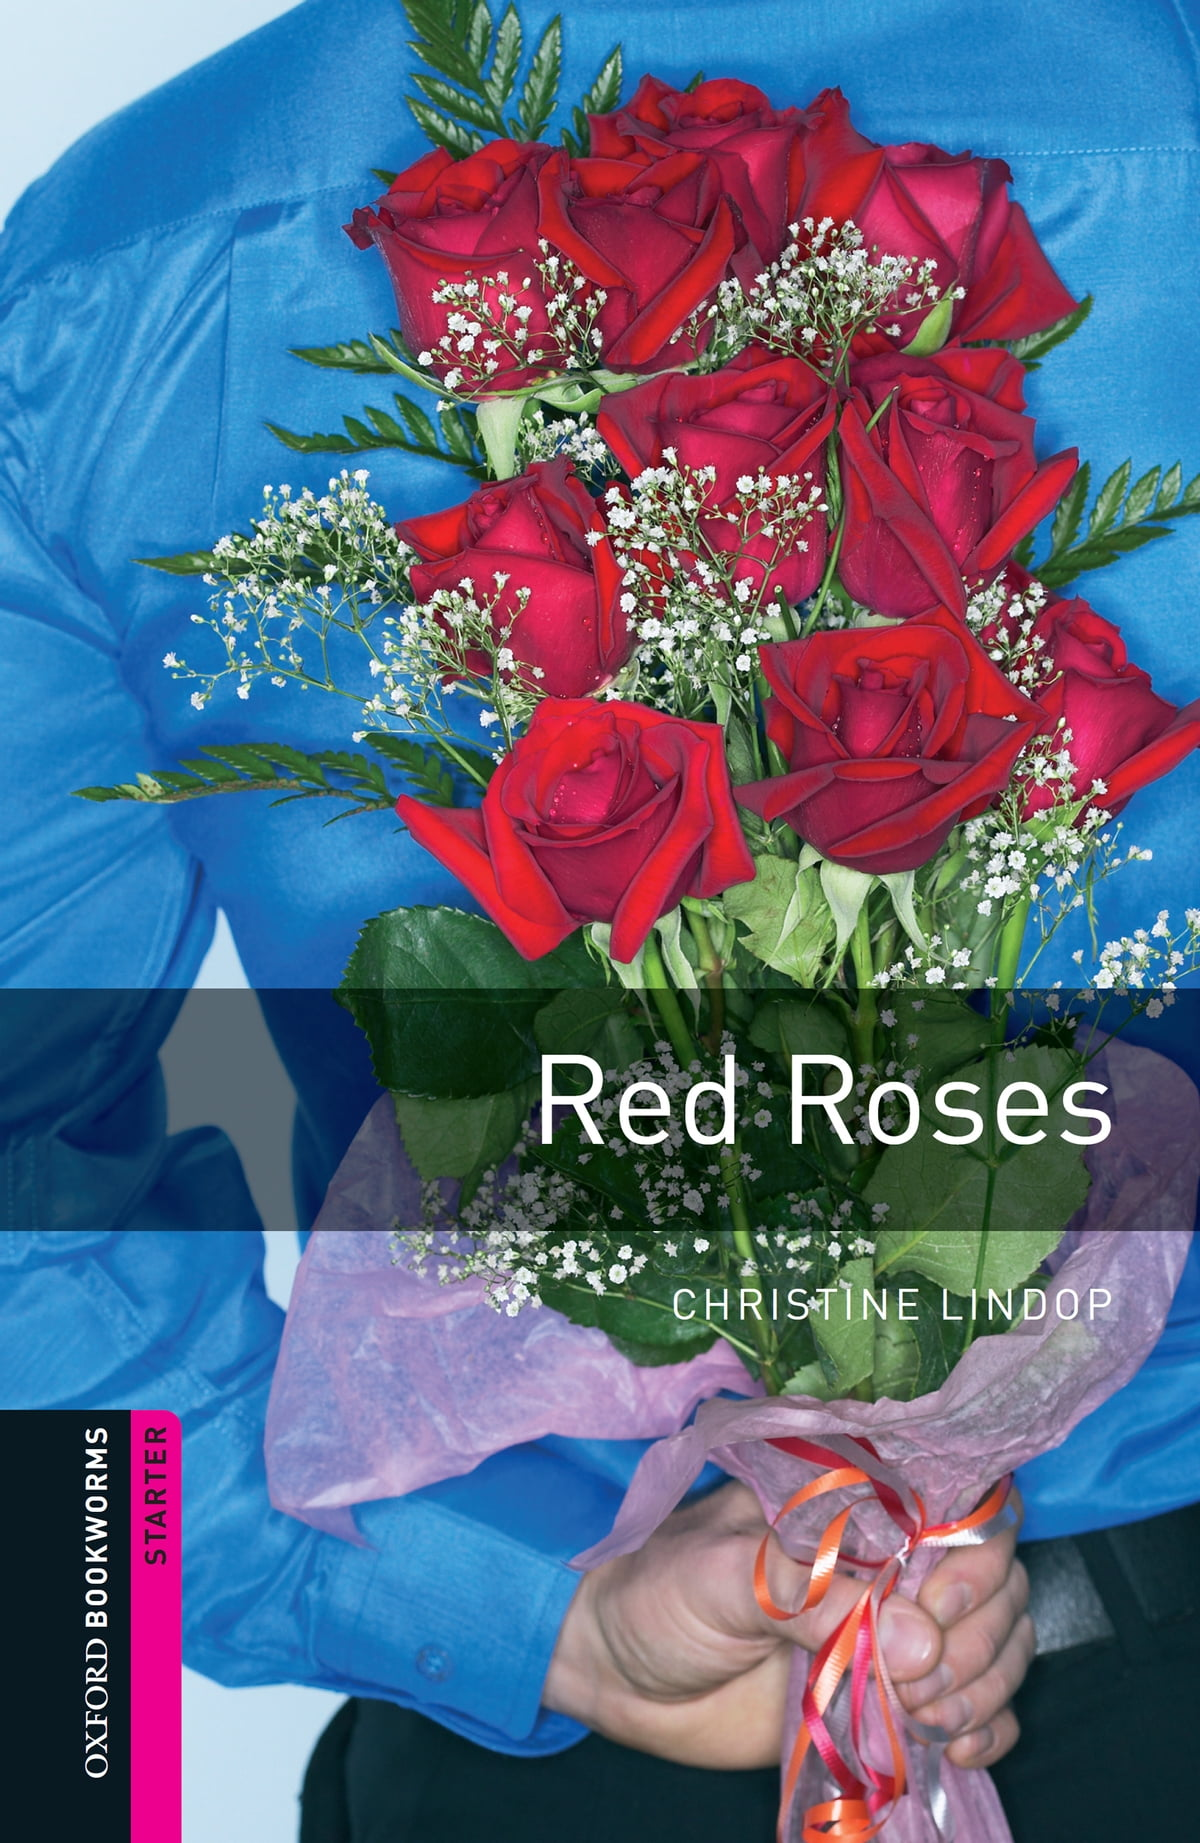 Oxford Bookworms Library Red Roses Starter Level Oxford Bookworms Library Ebook By